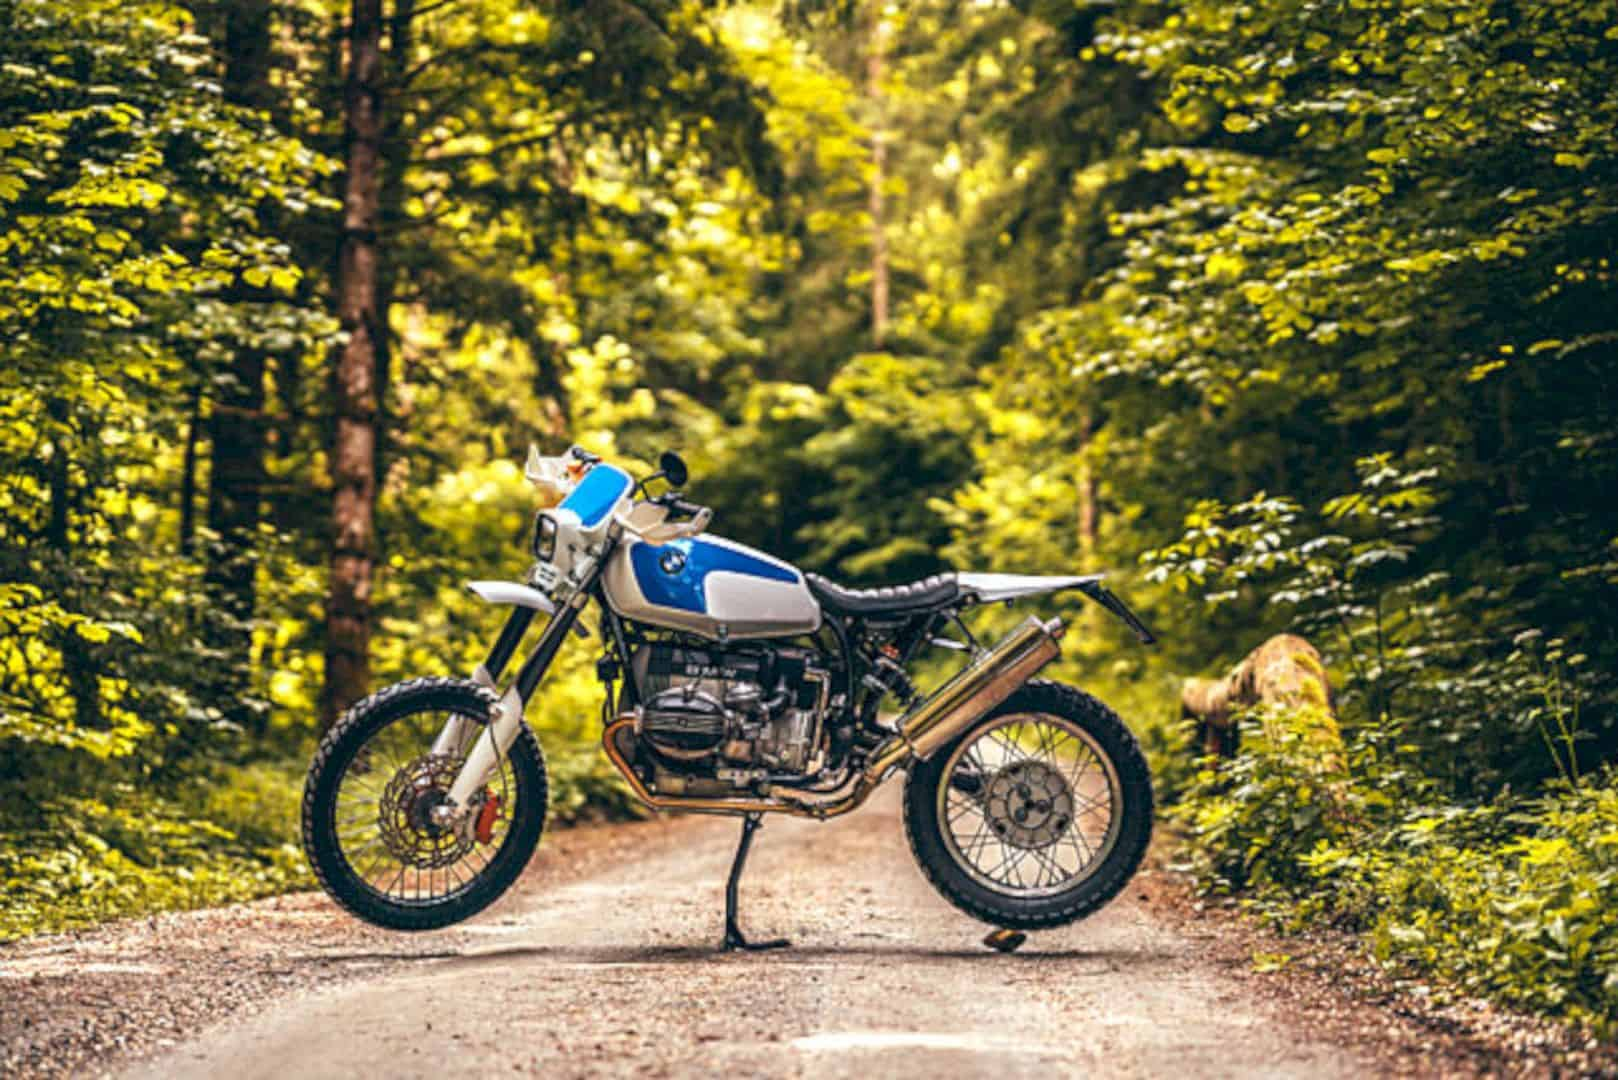 Bmw R80gs Enduro By Nct Motorcycles 1